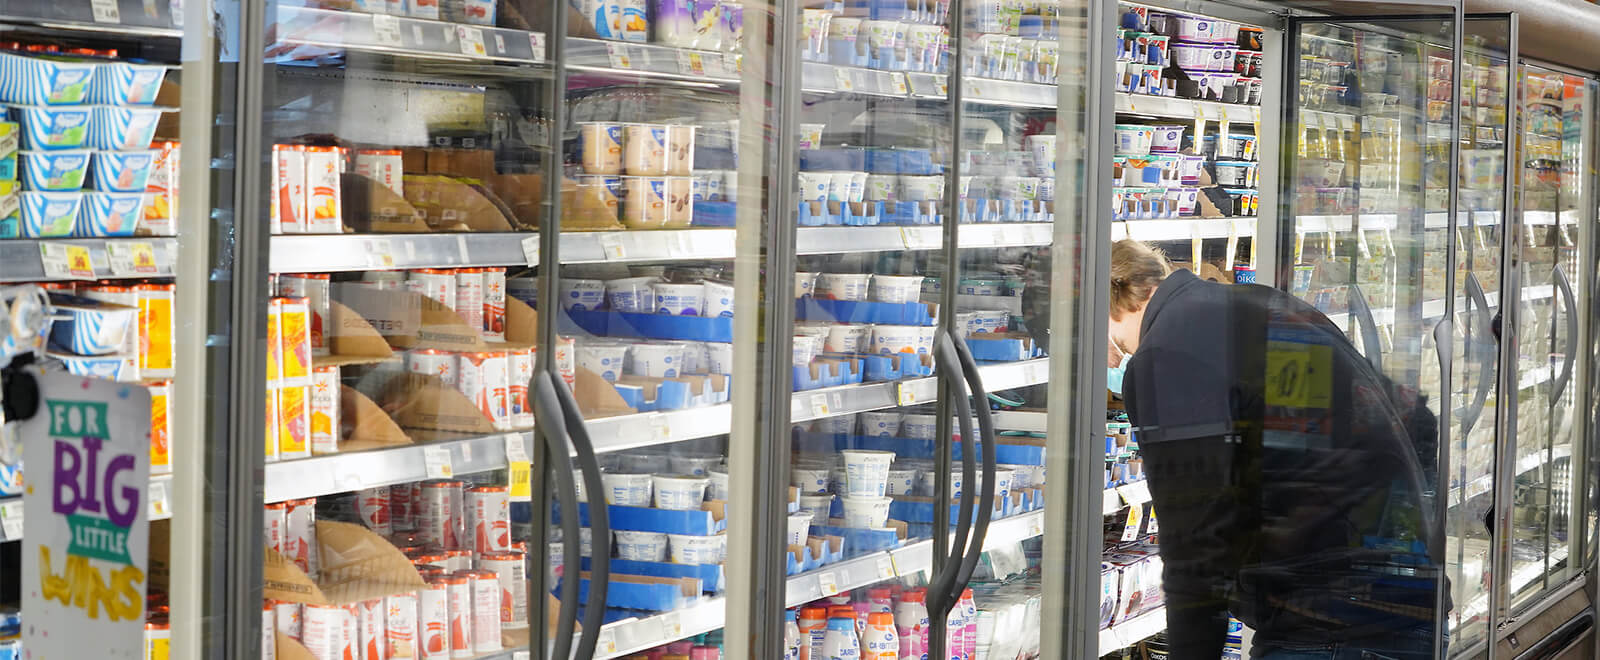 Yogurt Aisle at grocery